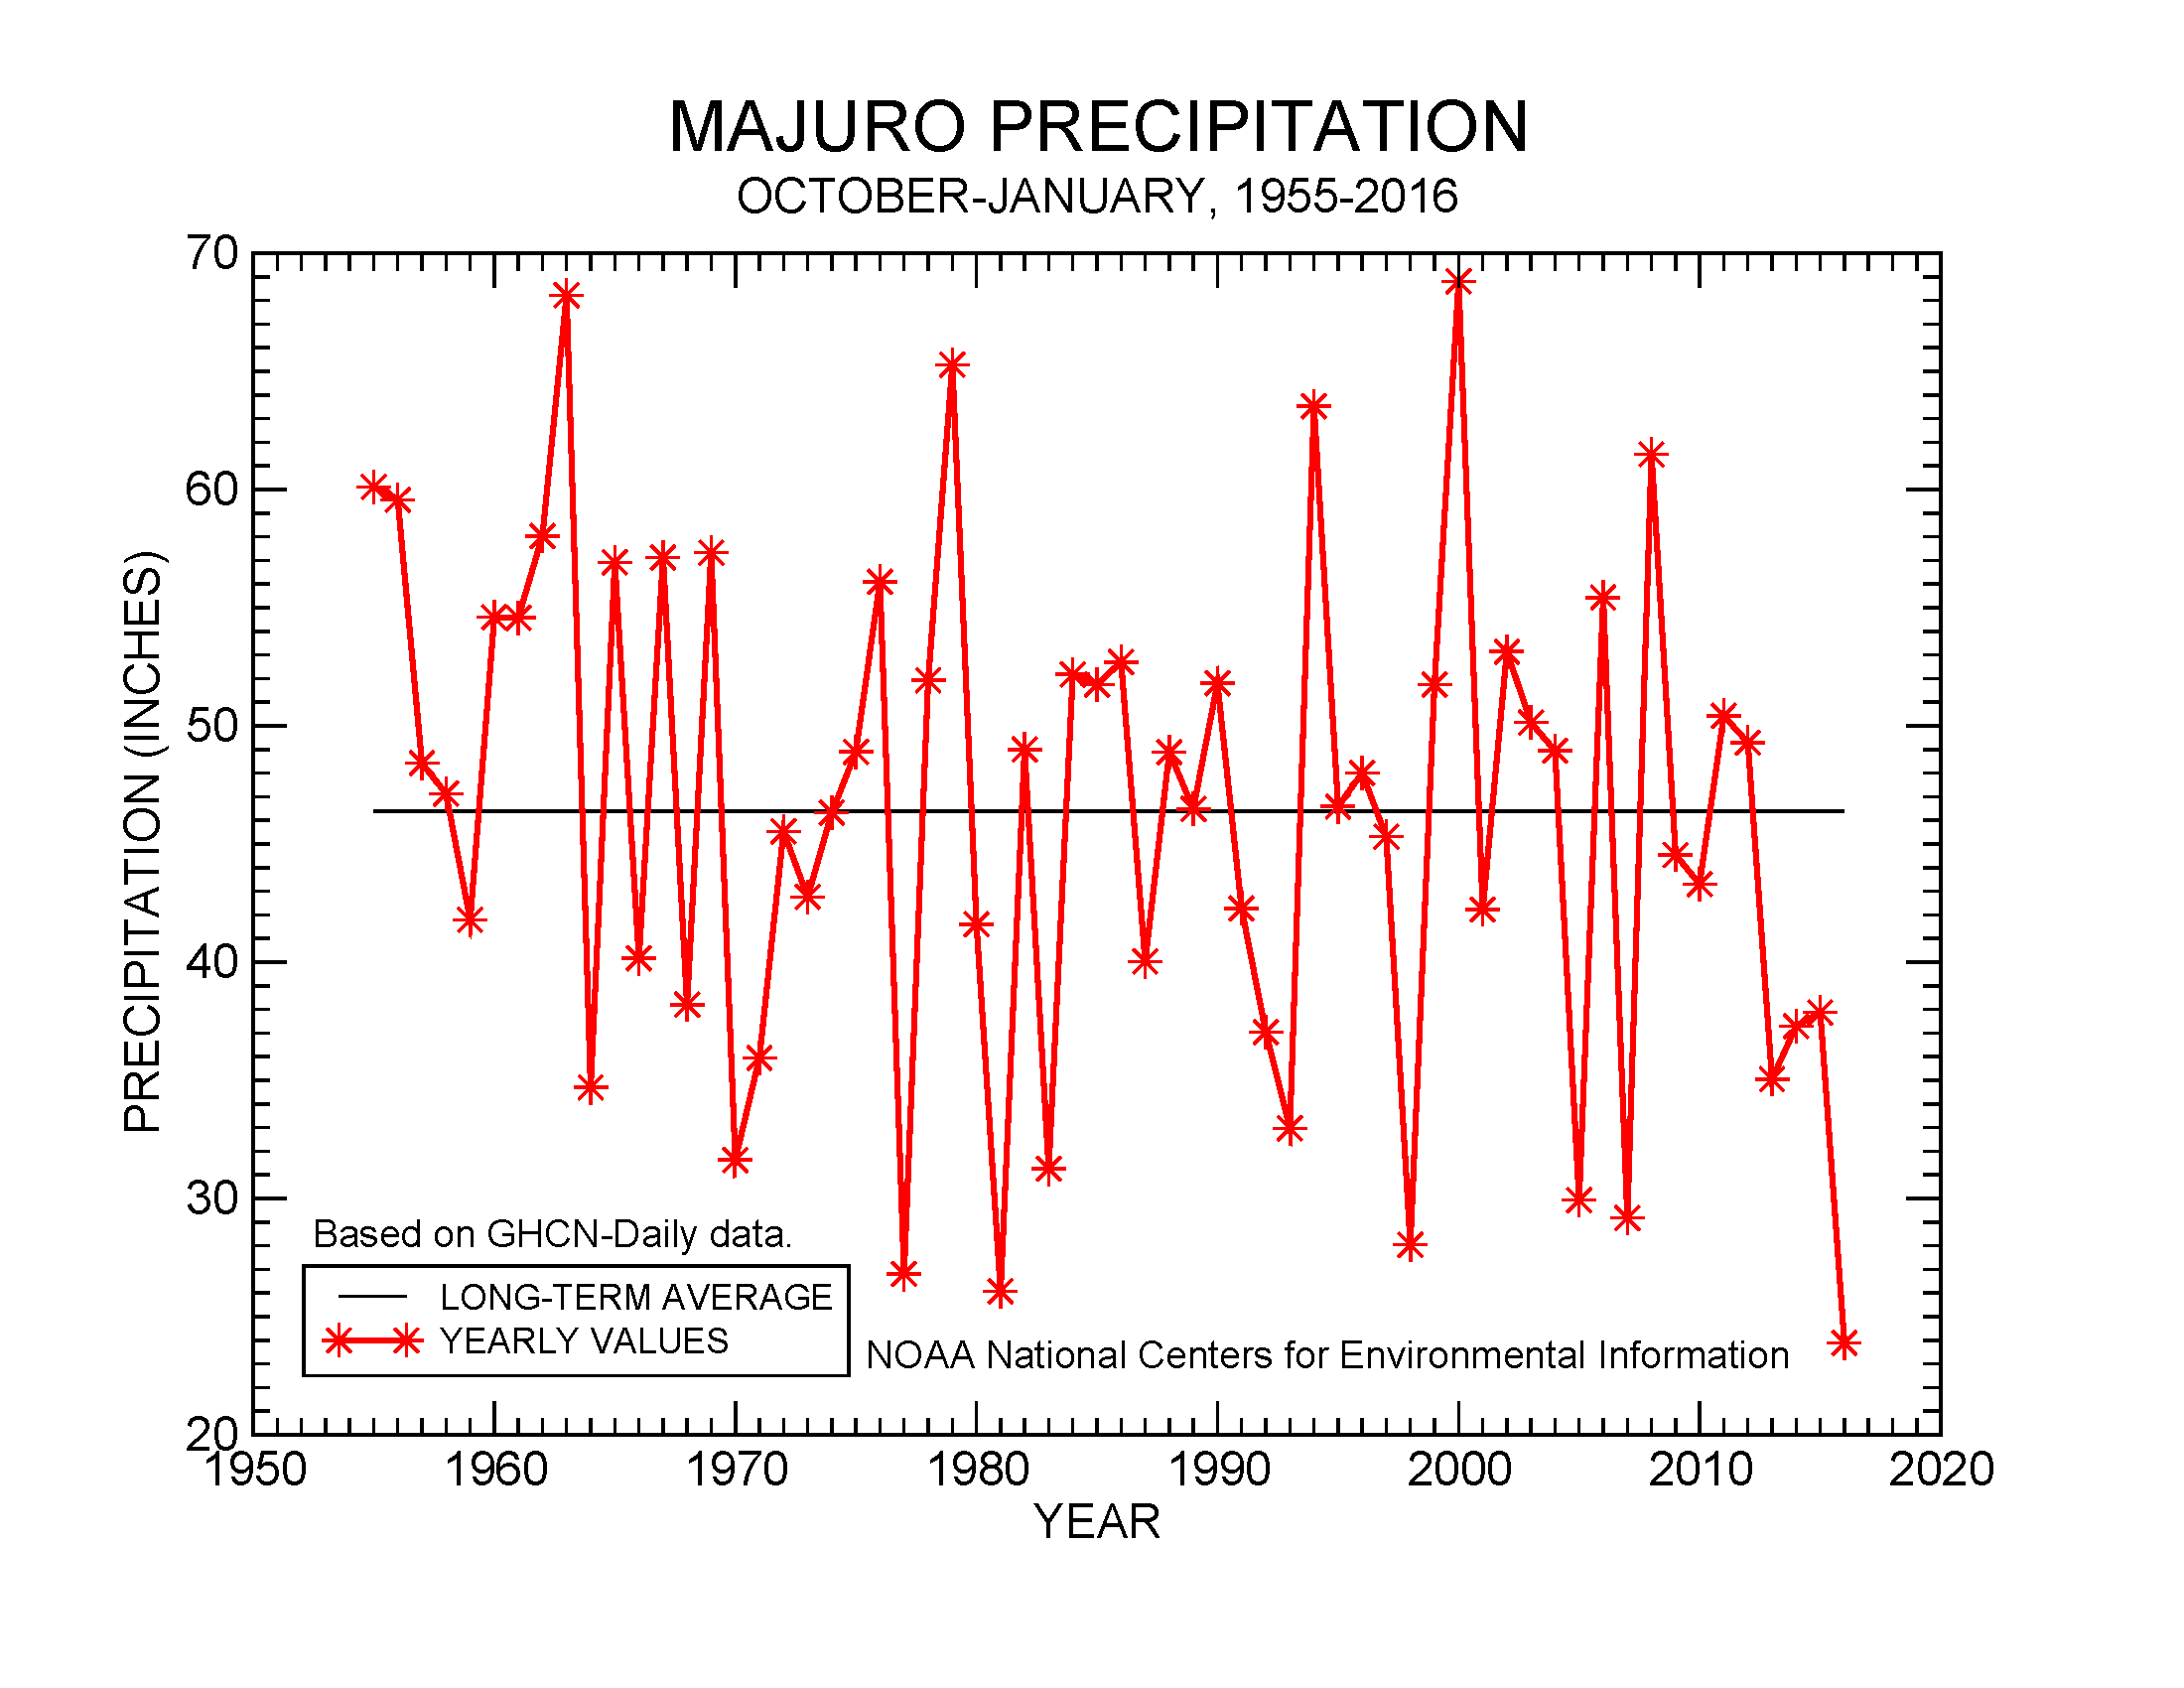 October-January precipitation for Majuro, 1955-2016